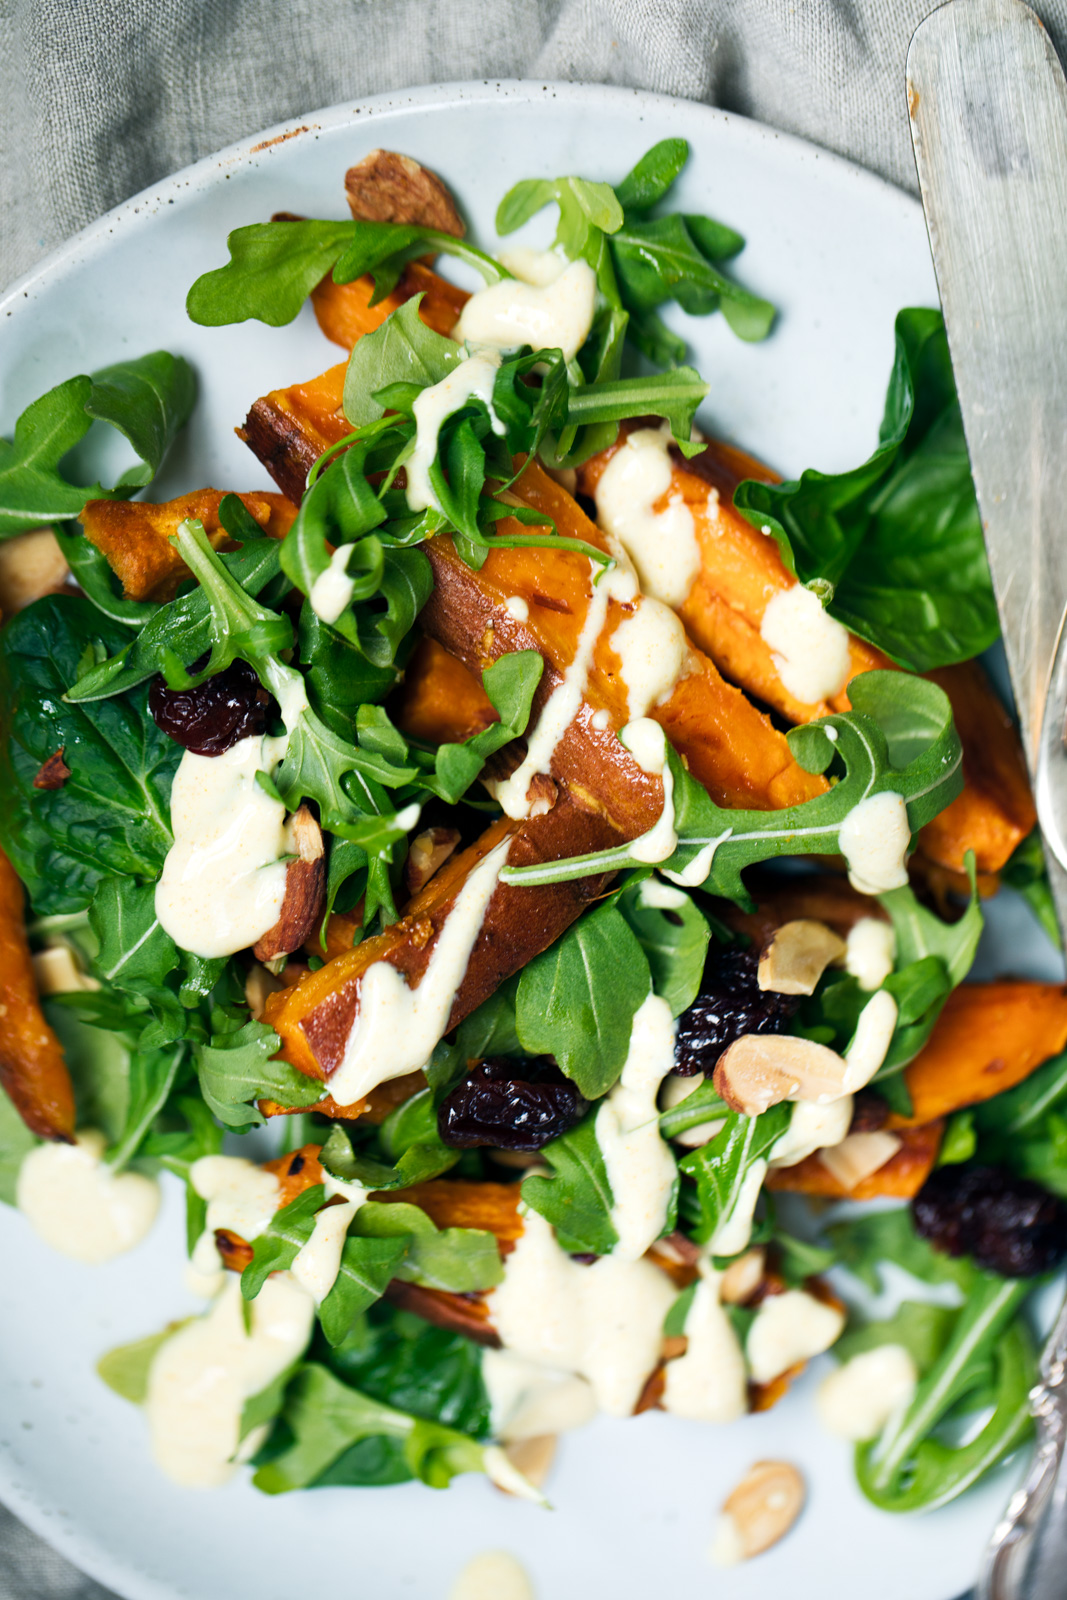 Roasted sweet potato arugula salad is a perfect lunch or appetizer. Topped with a light honey mustard yogurt dressing with a hint of gorgeous turmeric color.